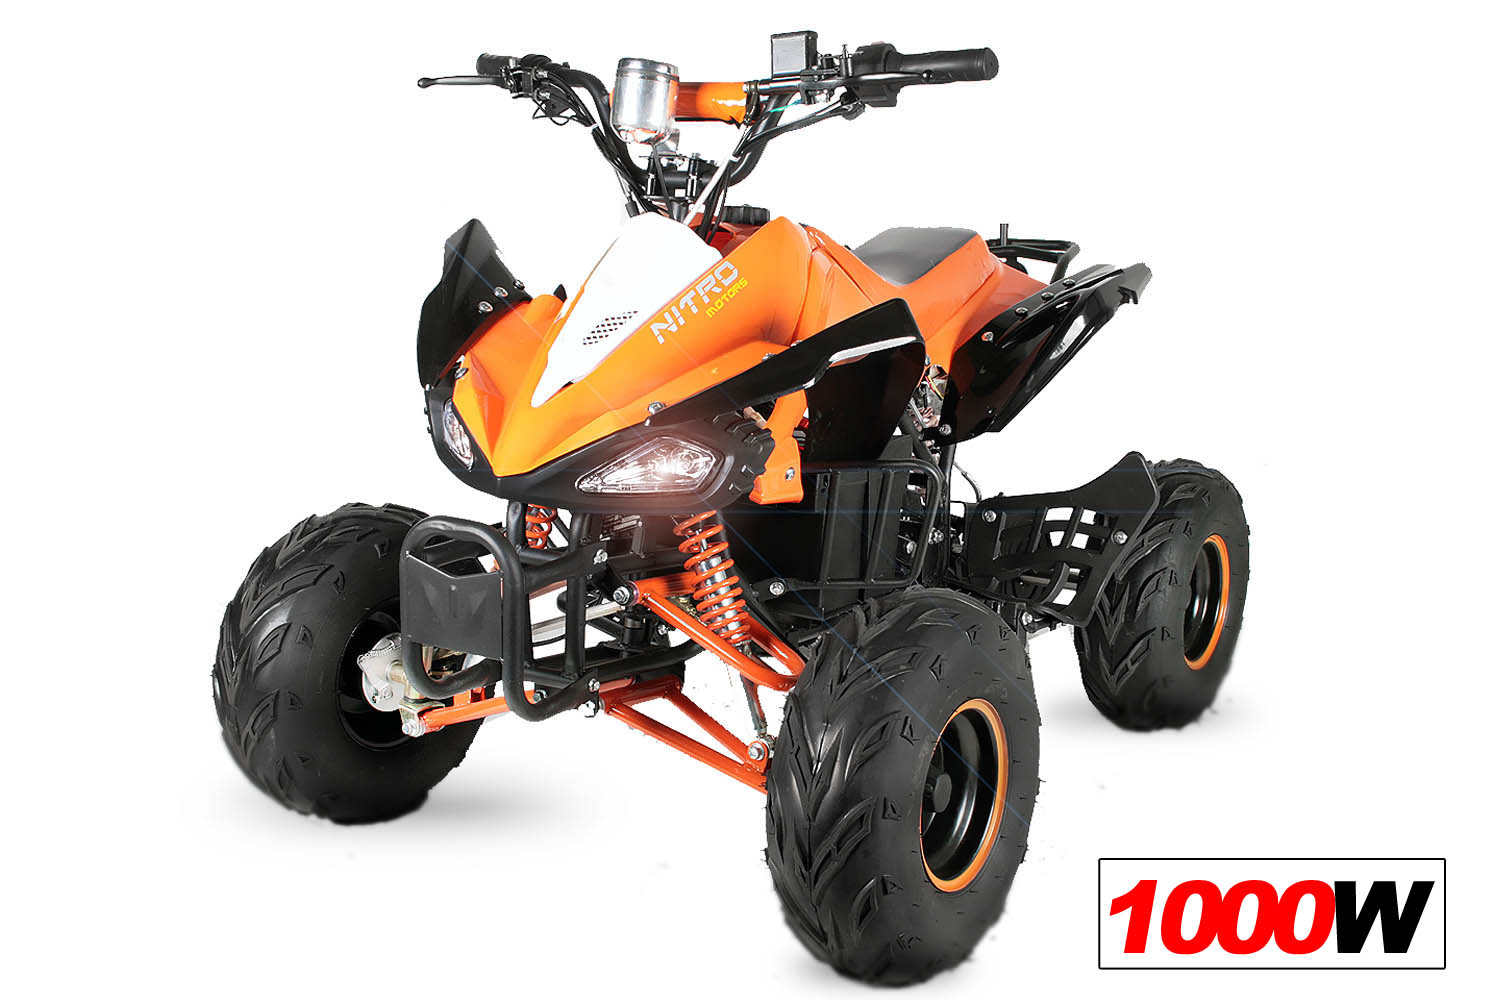 ECO SPEEDY 1000W 48V 7¨ 2 SPEED